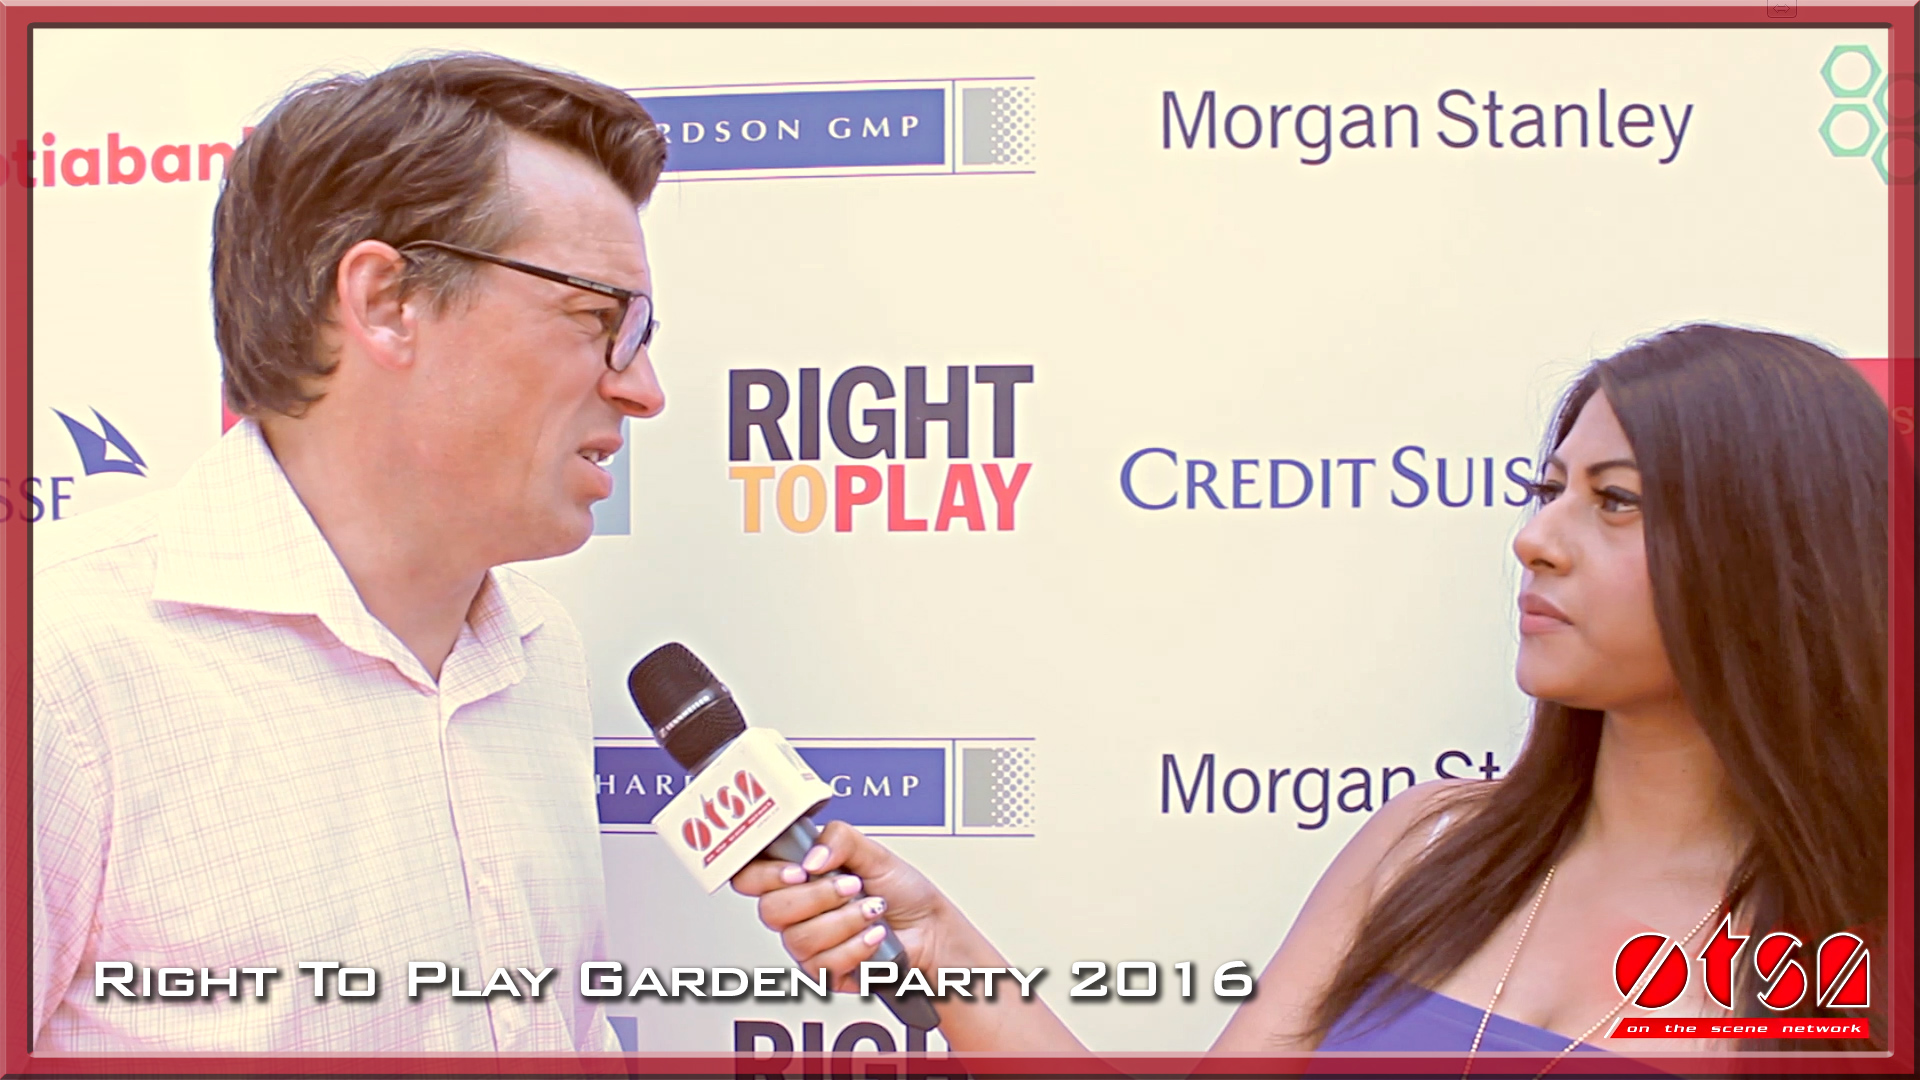 Right To Play Garden Party 2016